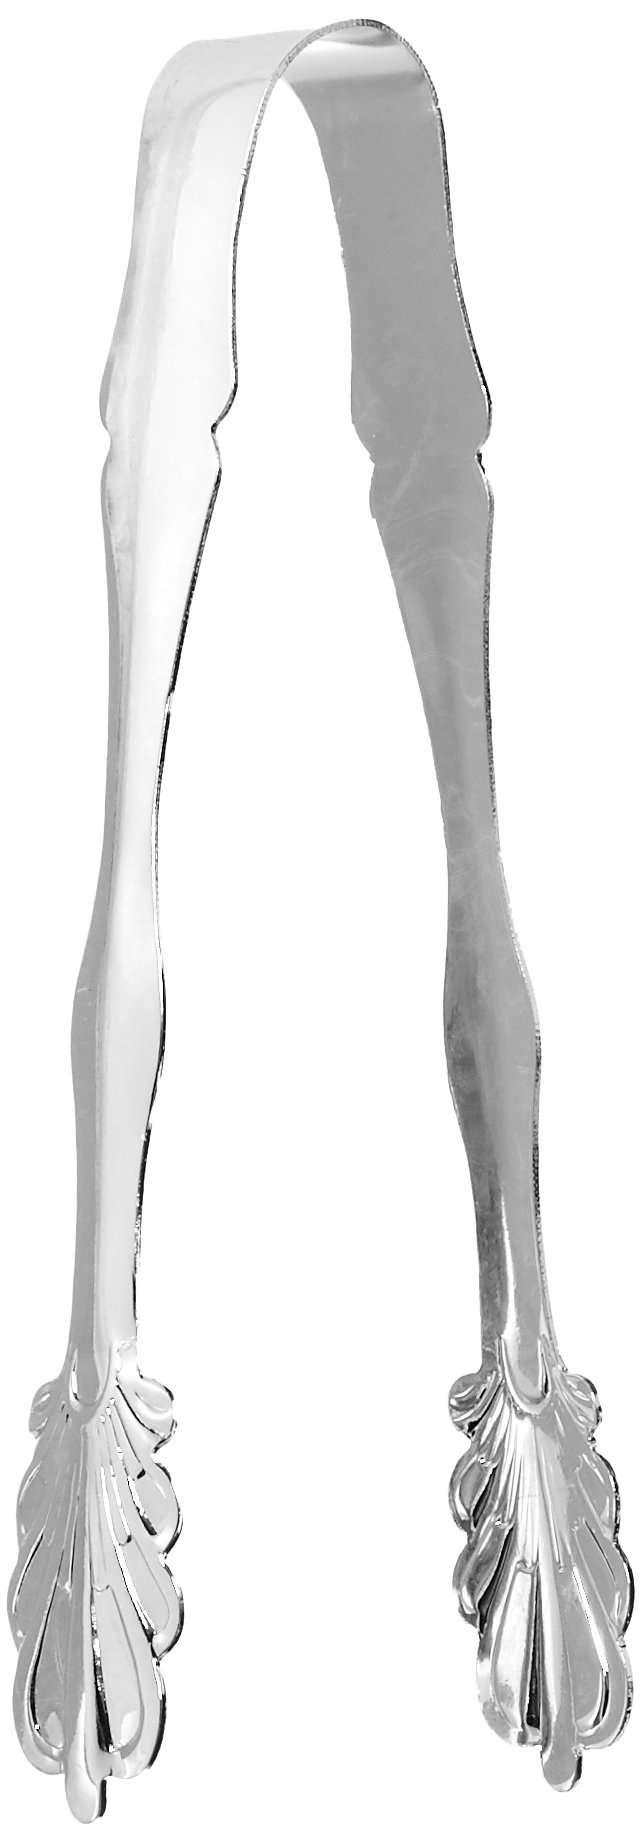 Elegance Silver 86242 Silver Plated Ice Tongs, 7''